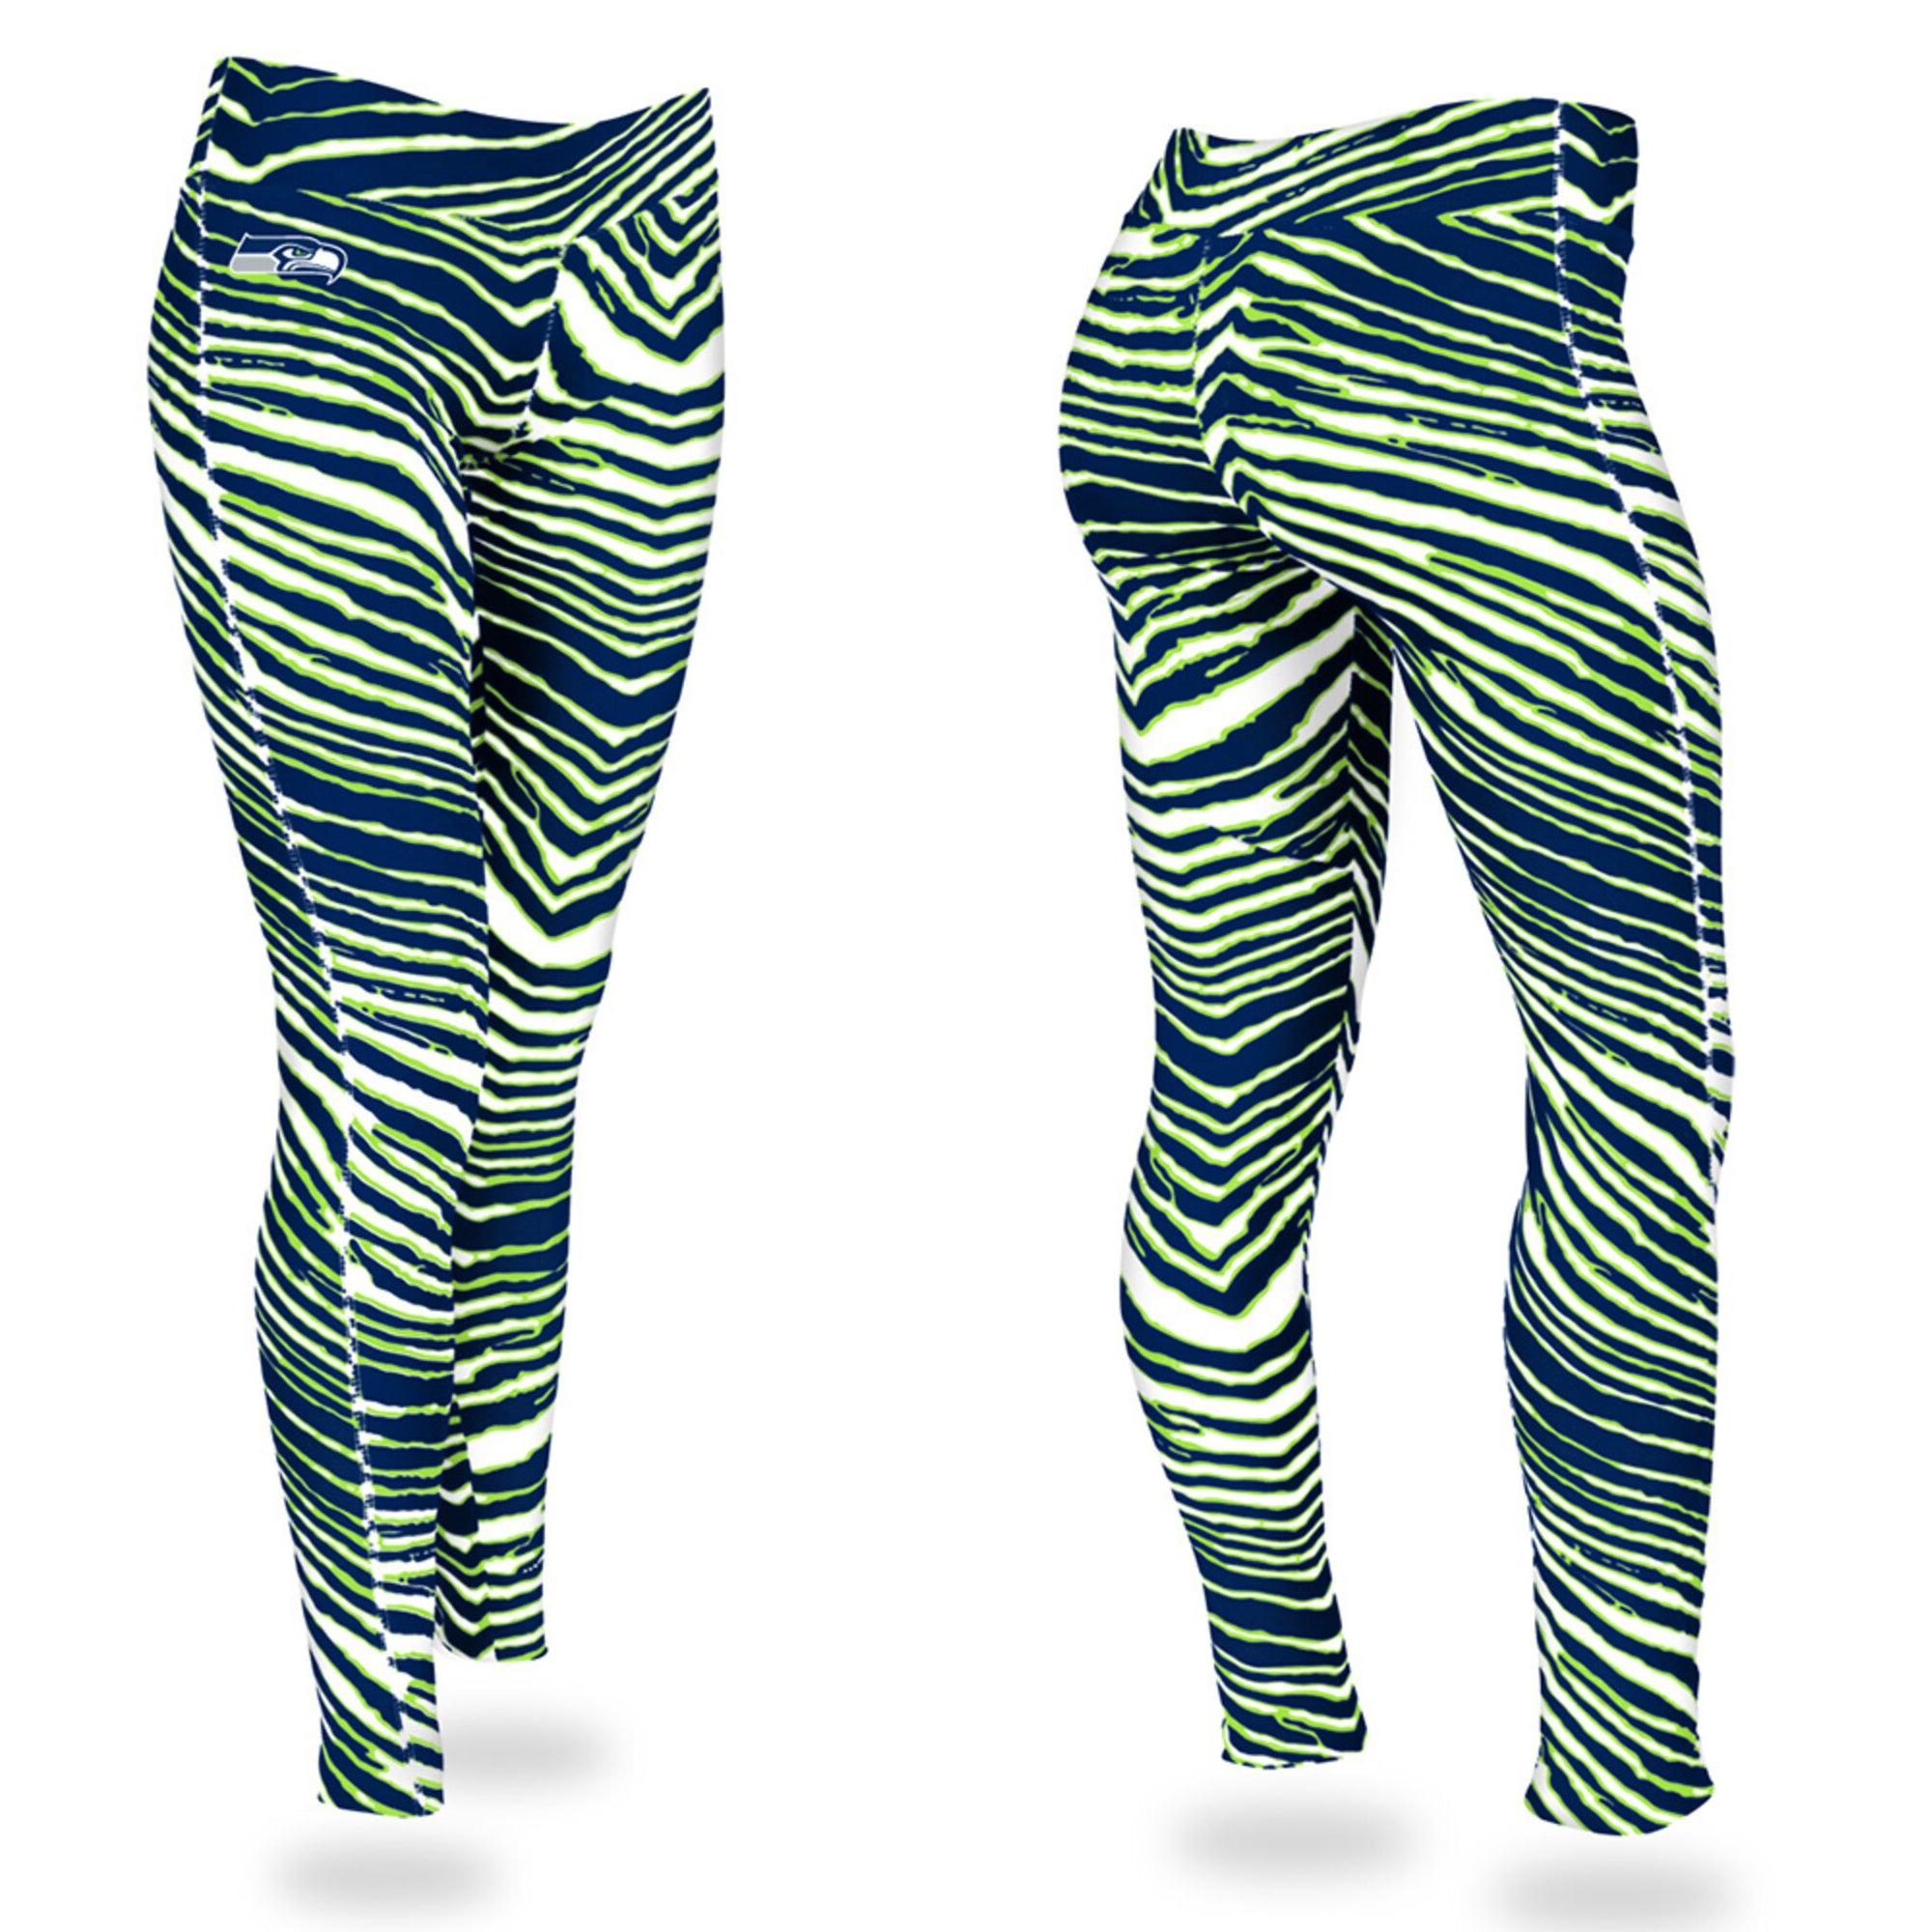 Zubaz Zebra Print Slim Fit Trousers For Ladies-Green/Dark Navy-NA9260